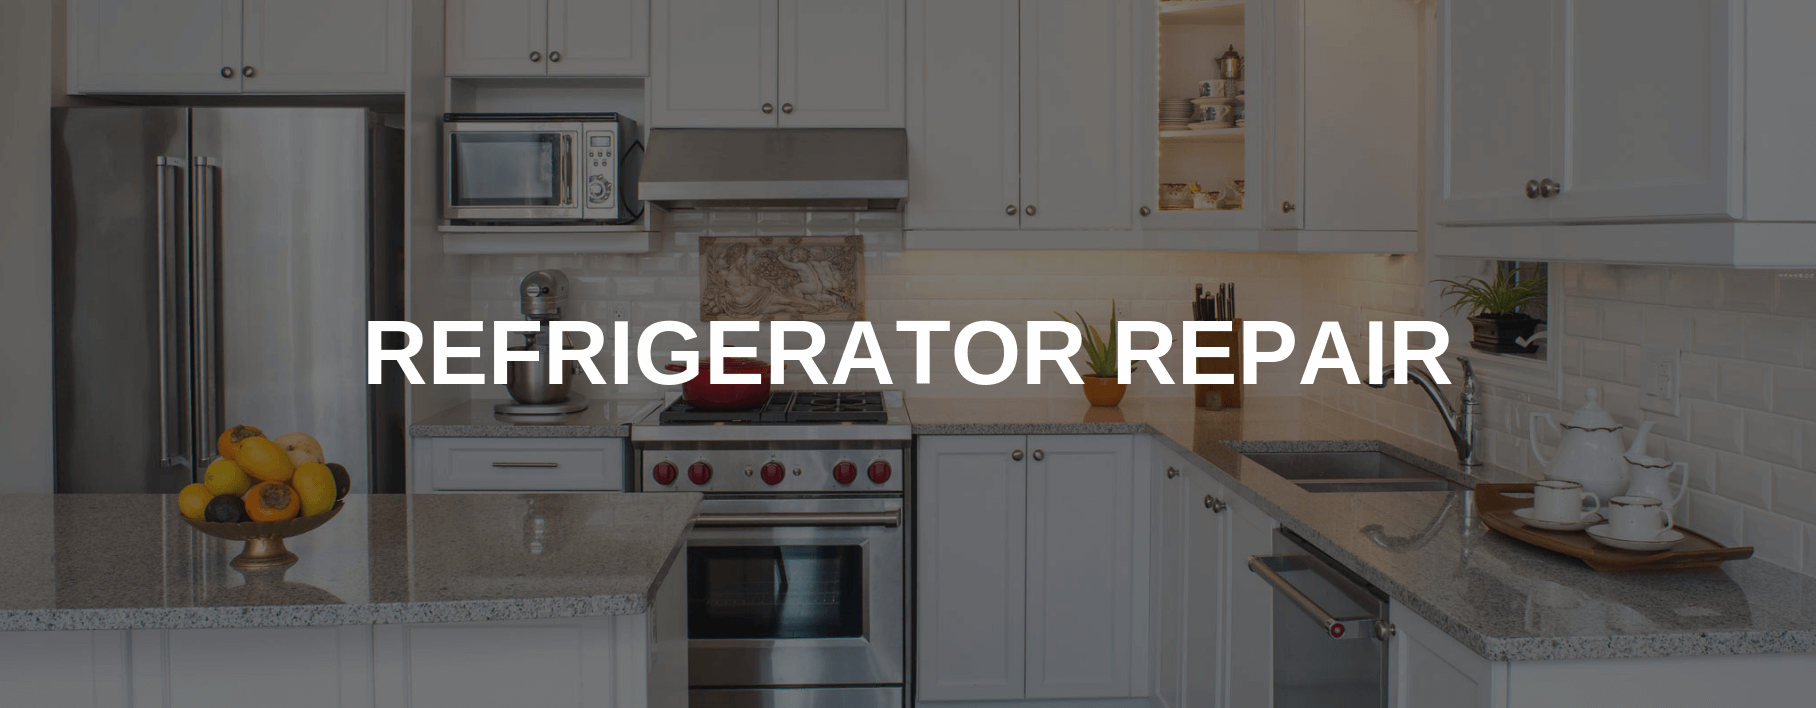 refrigerator repair greenwood